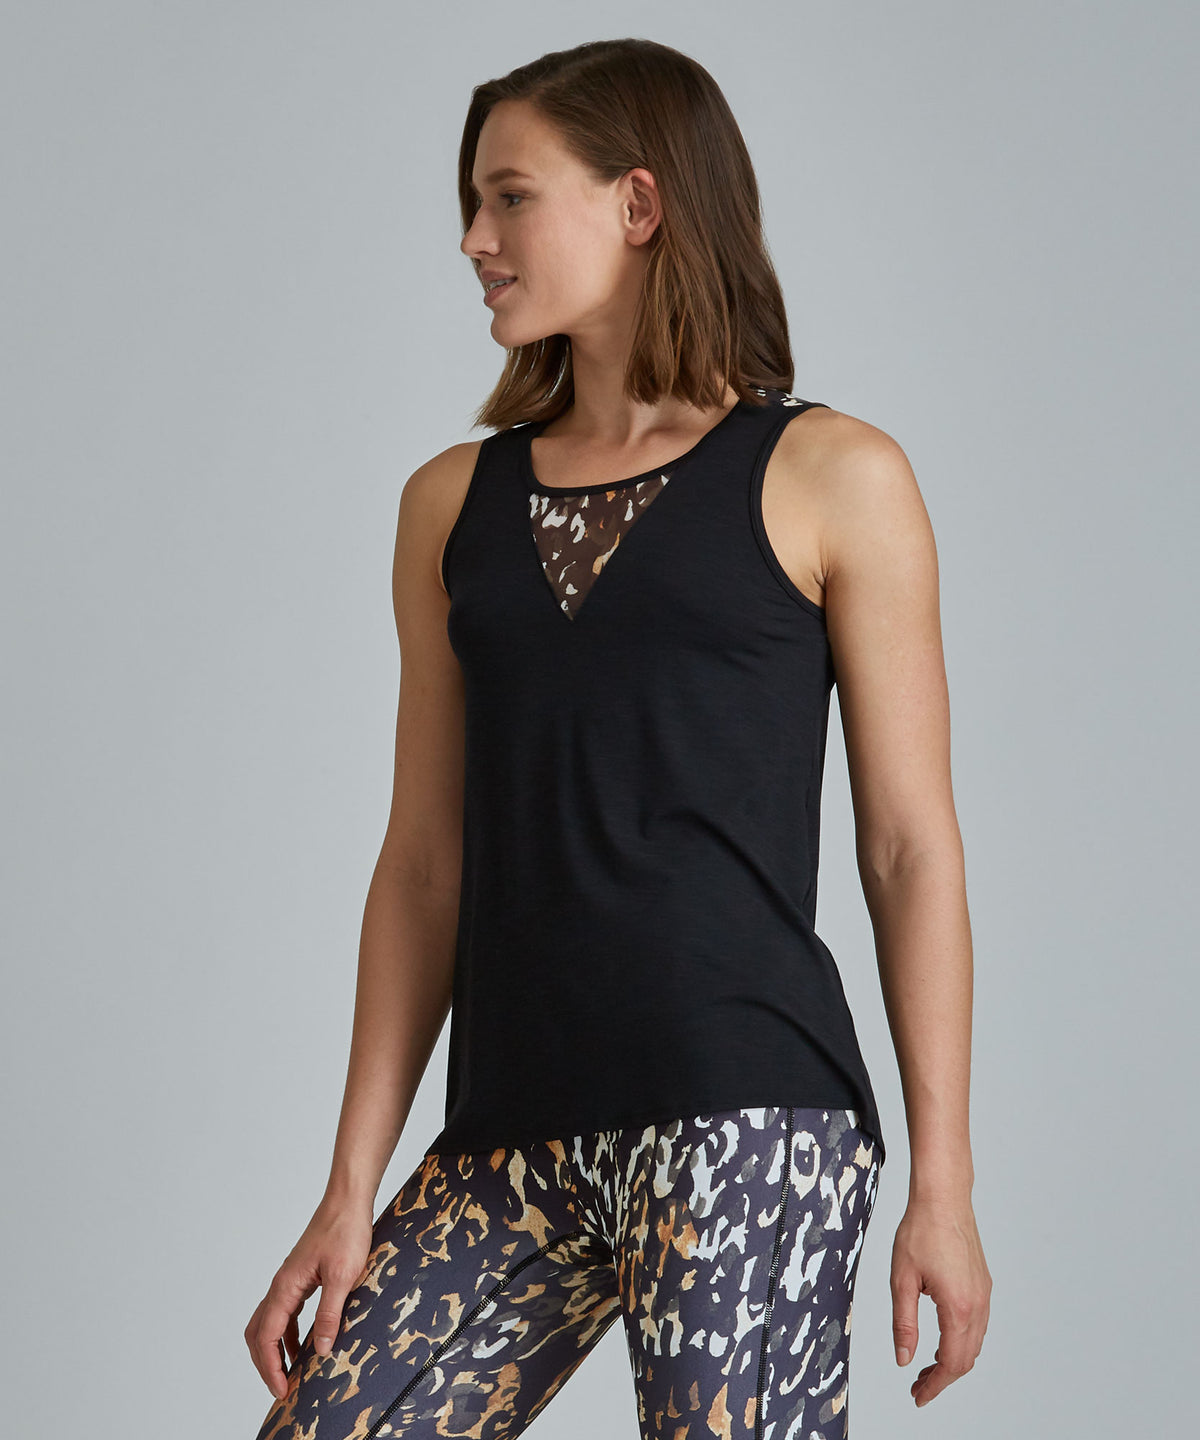 Amanda Top - Ombre Cheetah Ombre Cheetah Amanda Top - Women's Activewear Tank Top by PRISMSPORT